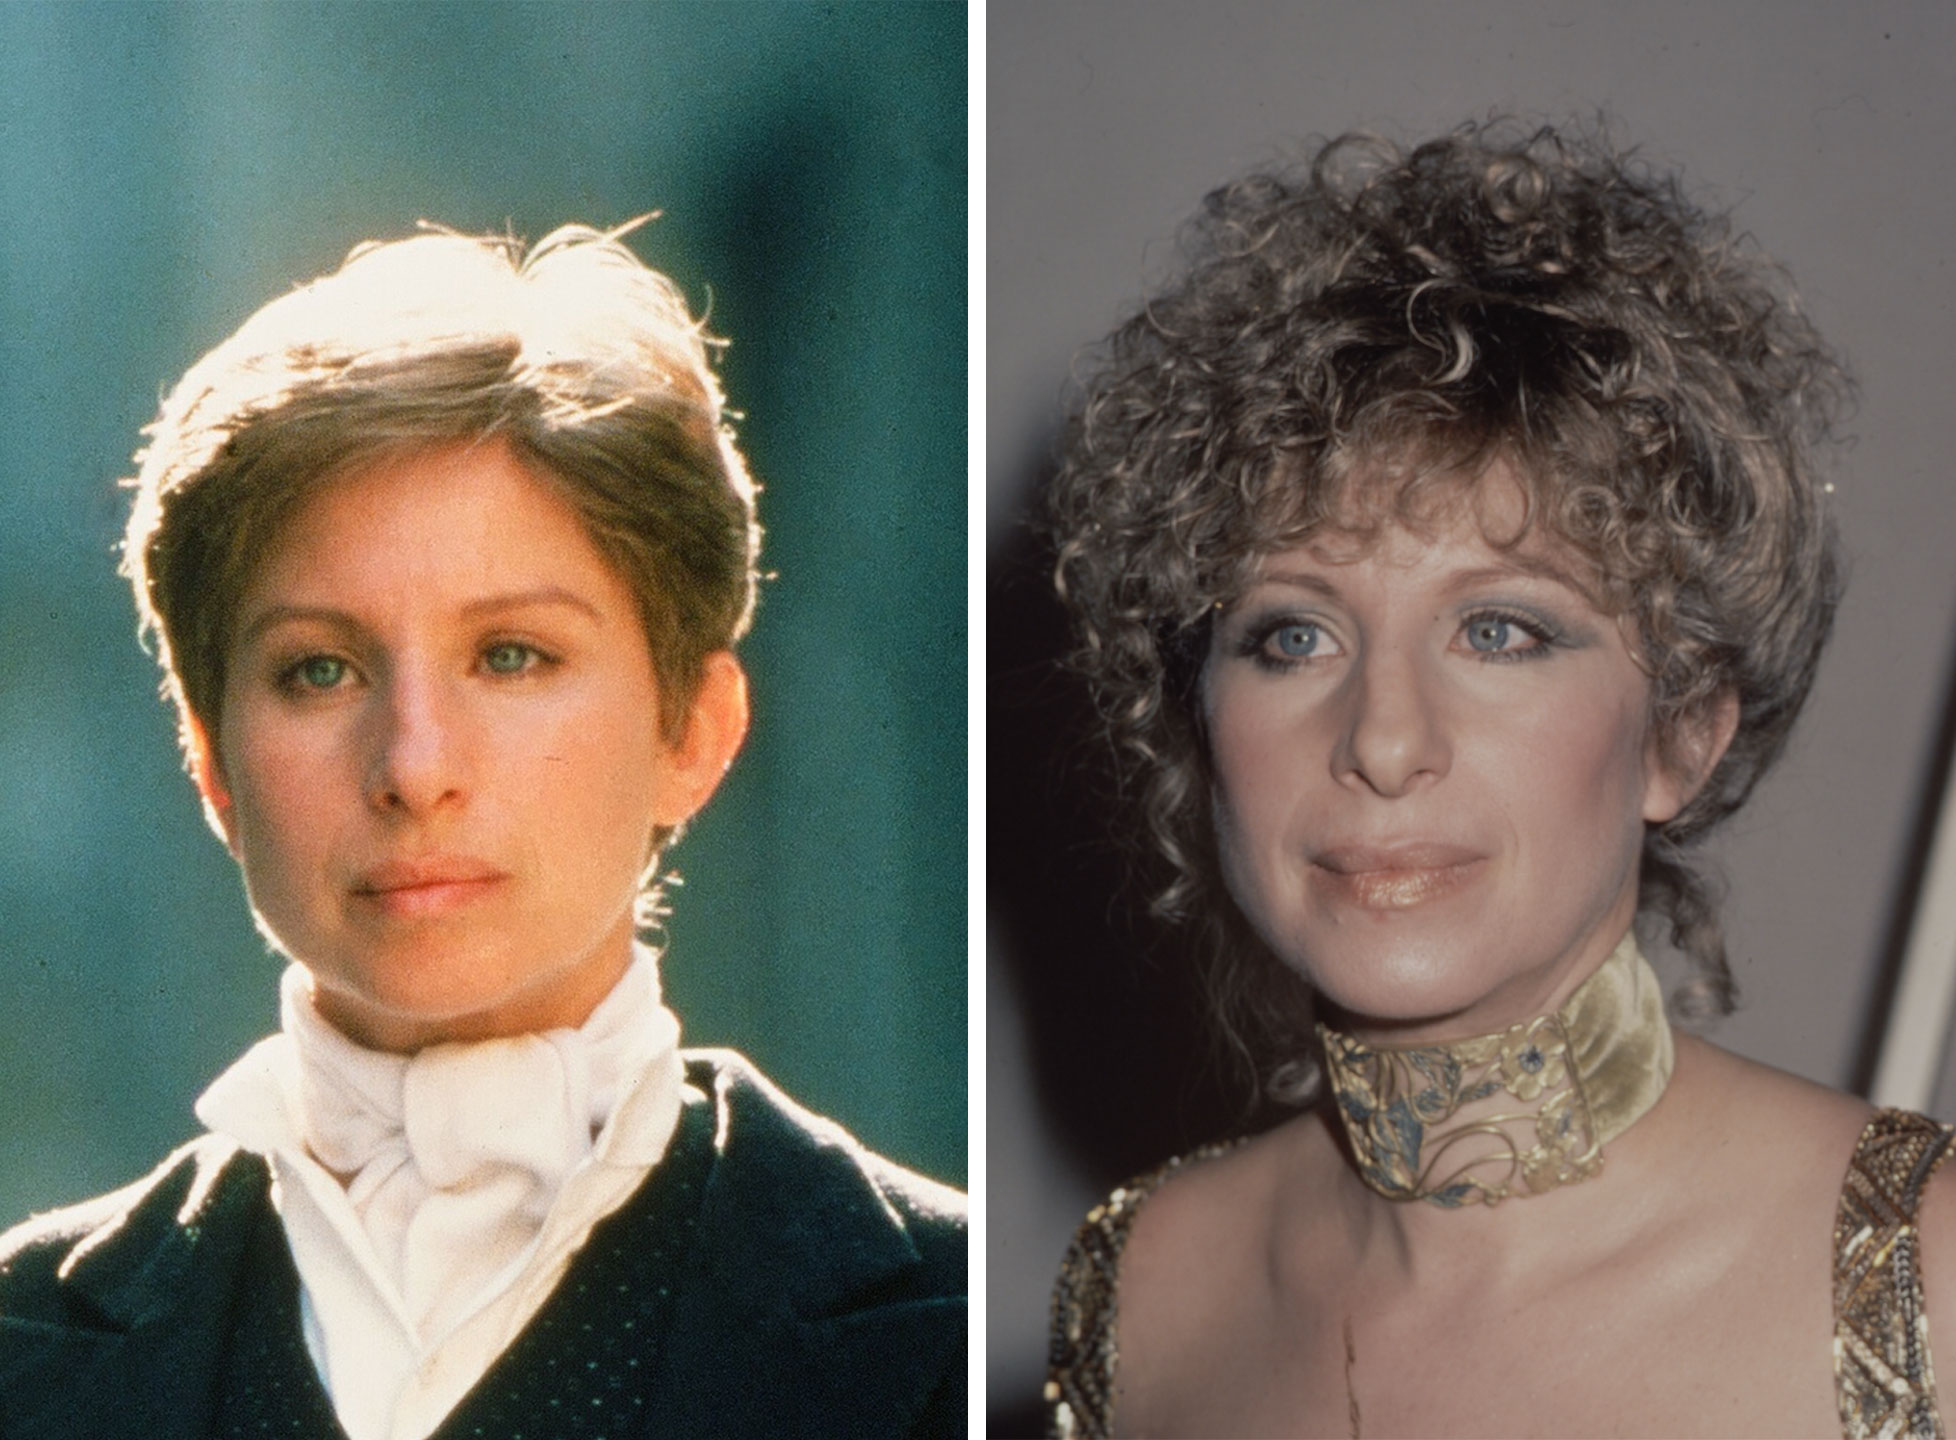 Barbra Streisand as Yentl Mendel in Yentl